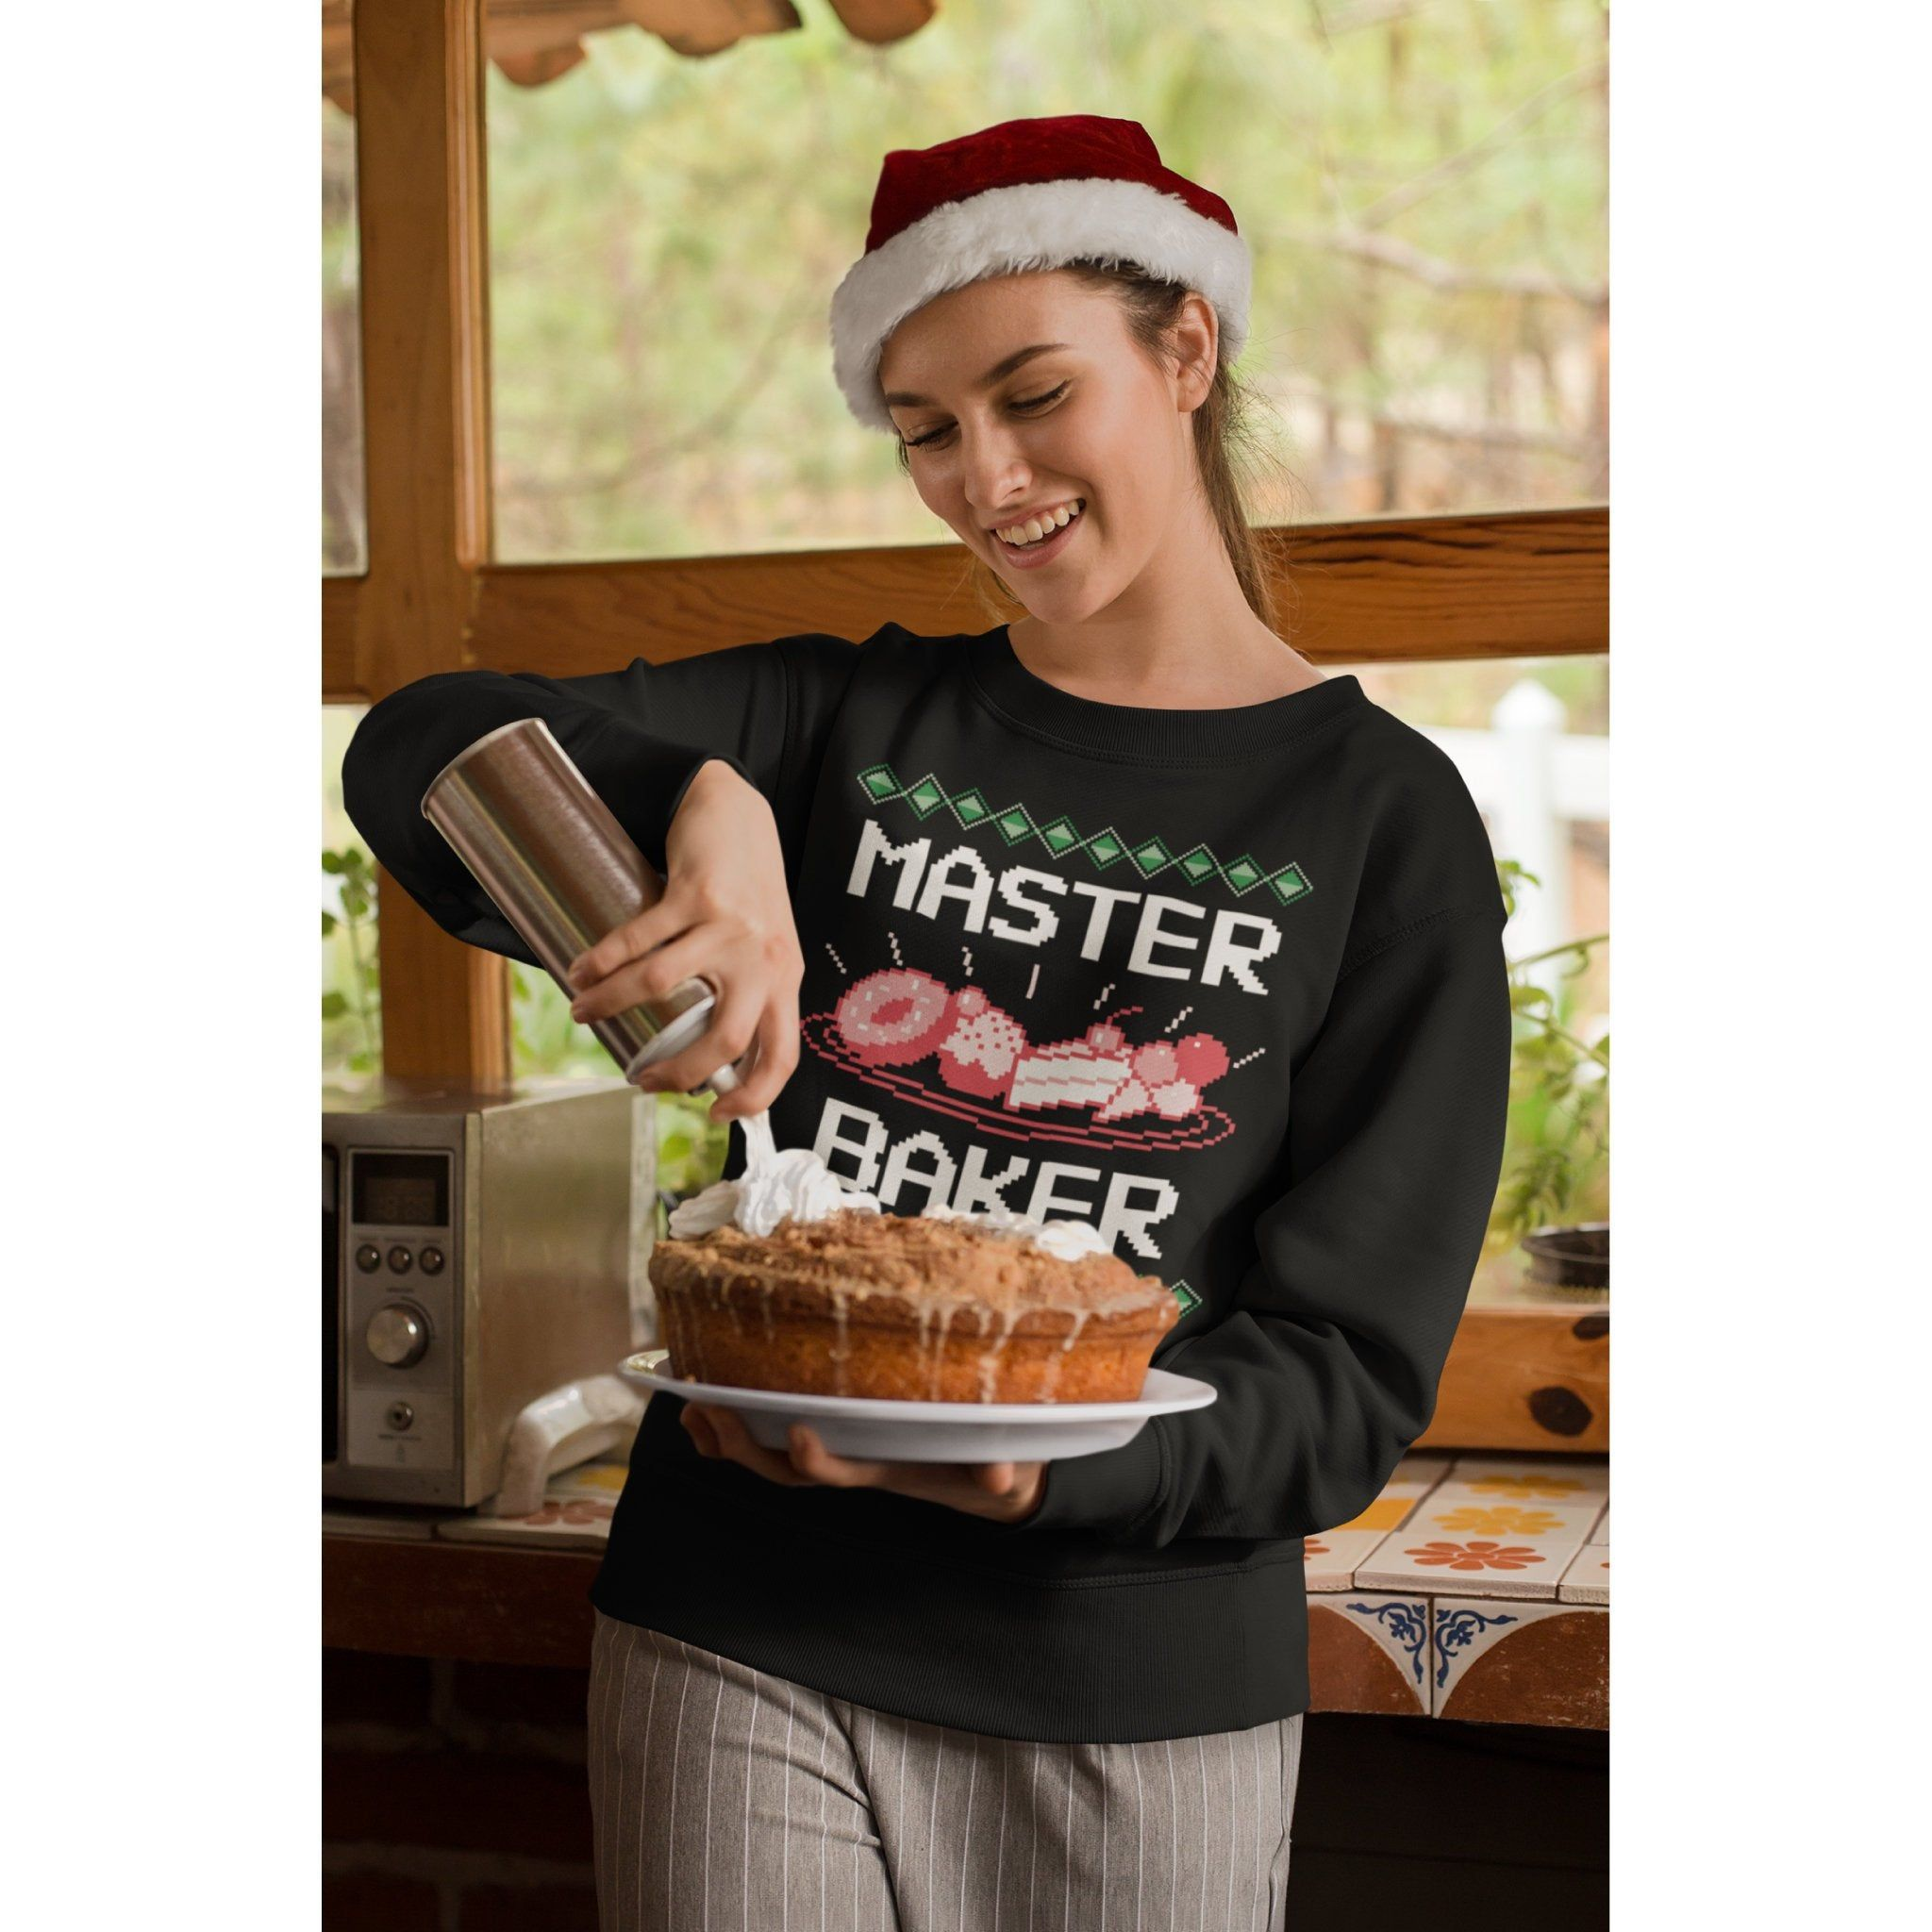 Master Baker | Unisex Sweatshirt | Cake Baker | Ugly Christmas Sweater | Bakers Gift | Christmas Jumper | Xmas Jumper | Plus Size to 5XL #TackyChristmas #XmasJumper #ChristmasSweater #baker #PlusSize #UglyChristmas #CakeBaker #LoveToBake #BakersSweatshirt #MasterBaker